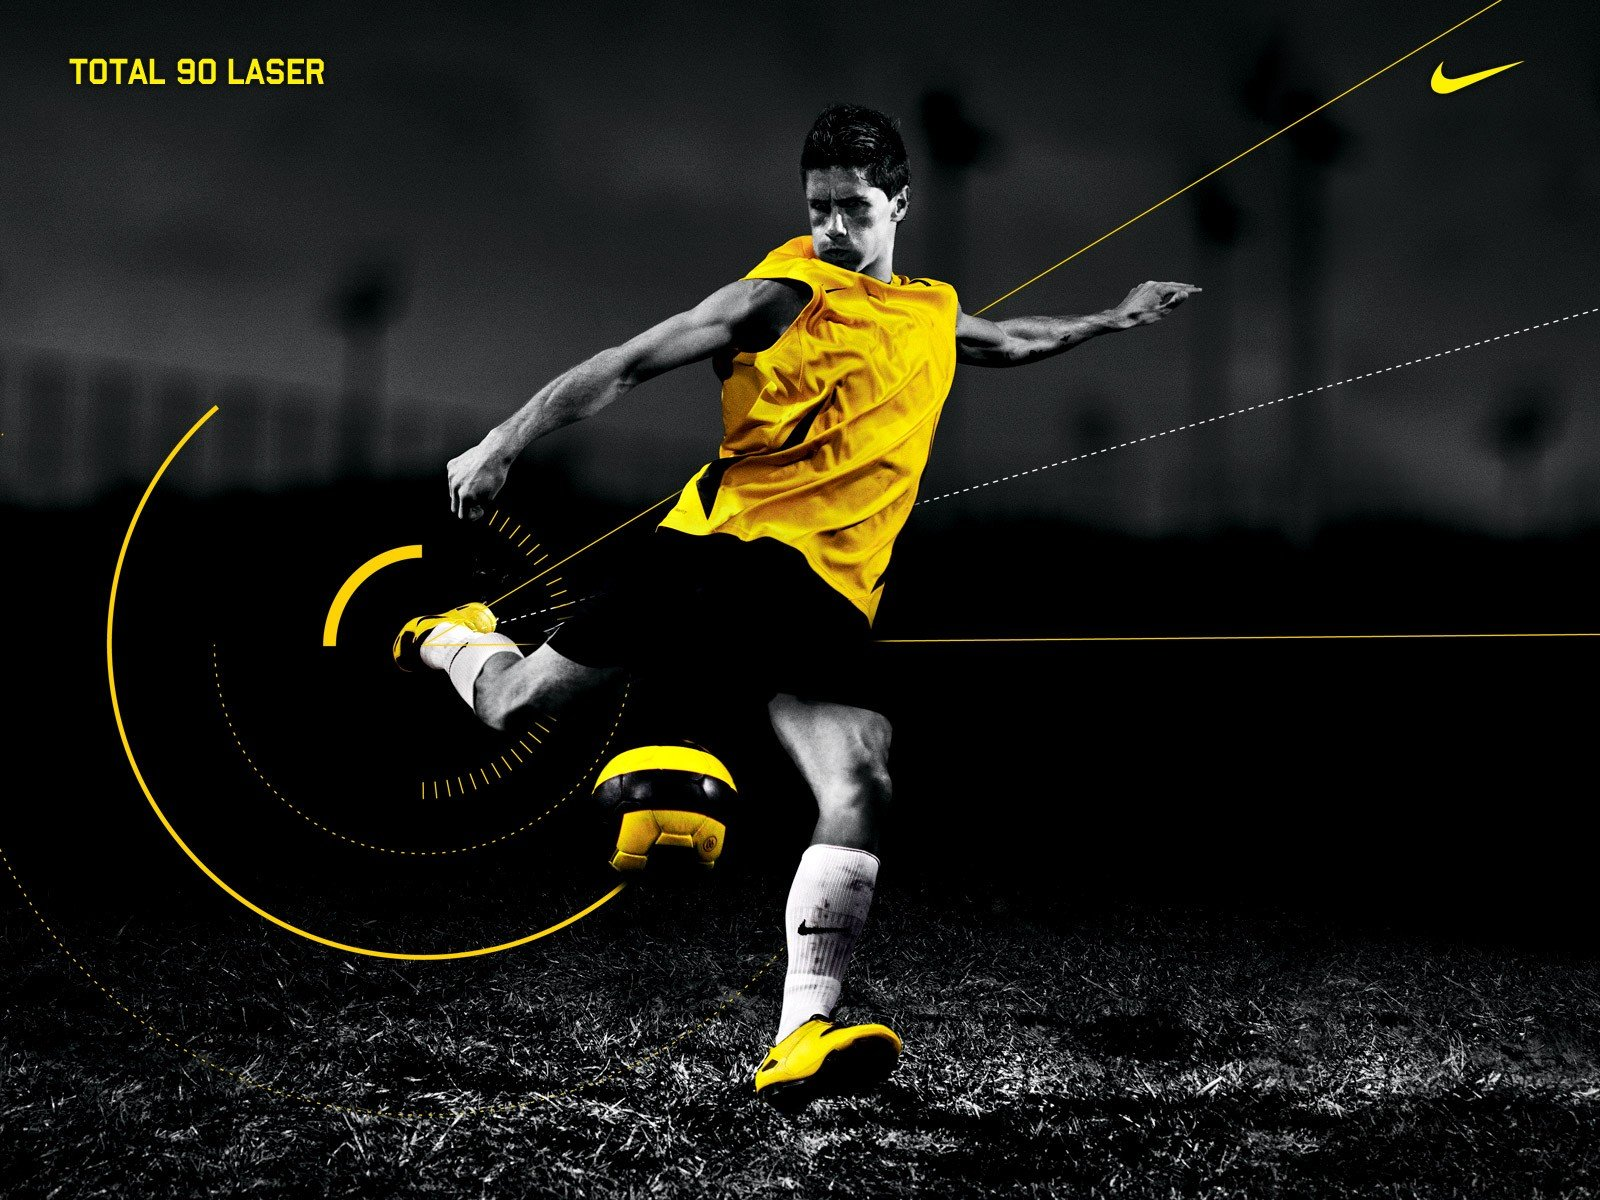 Soccer   Total 90 Laser   Sports computer desktop wallpapers 1600x1200